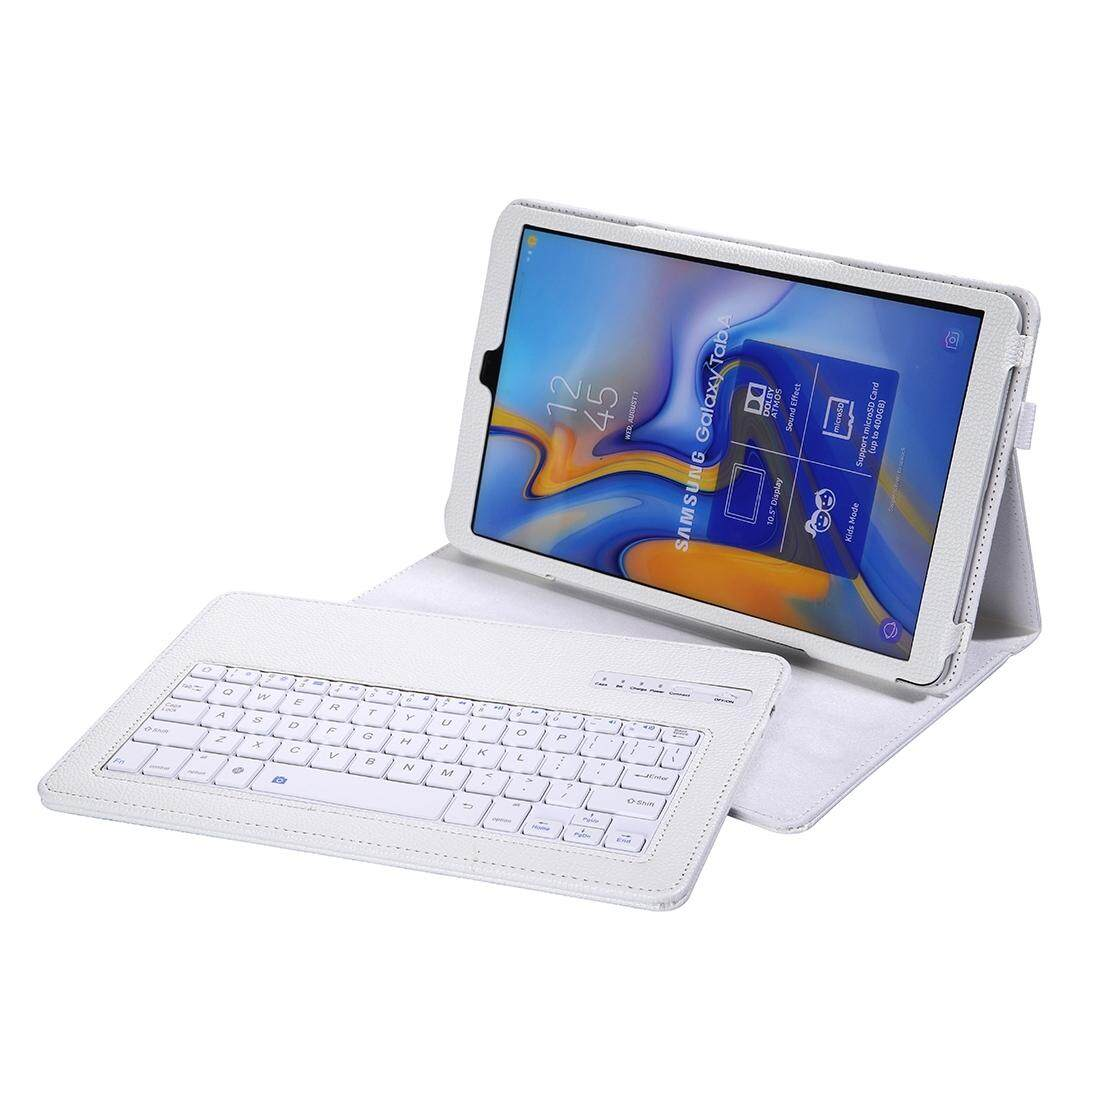 Laptop Cases - Buy Laptop Cases at Best Price in Philippines   www